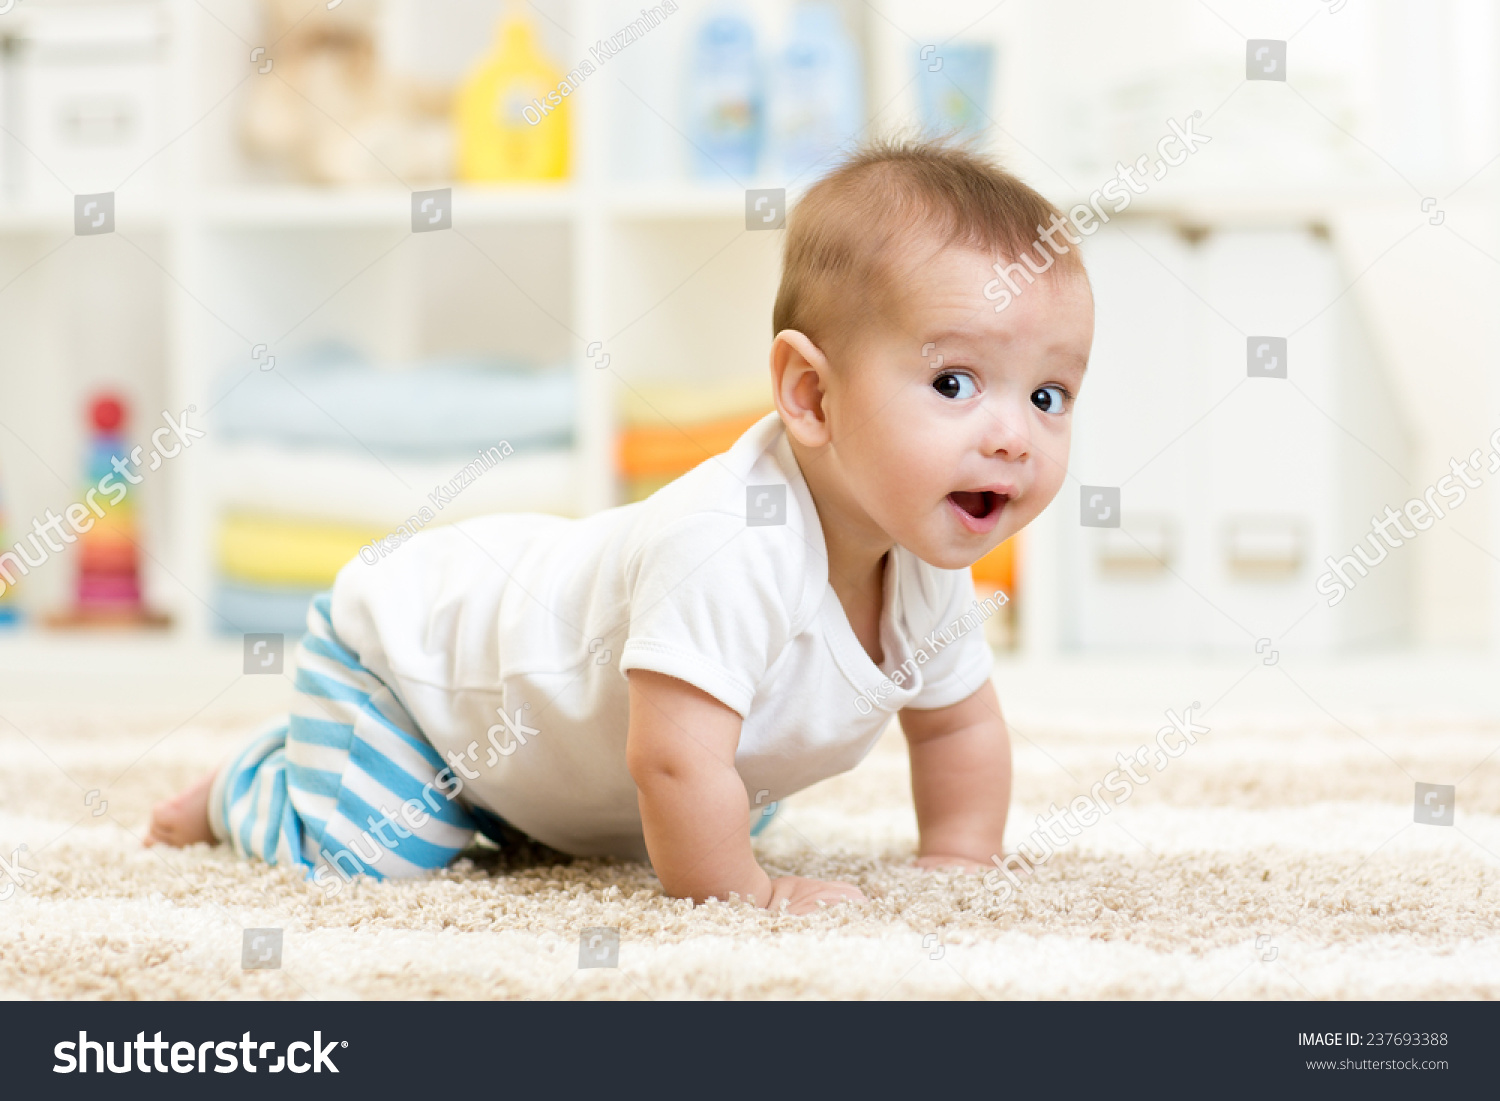 Funny Baby Boy quotes - 1. A baby is an inestimable blessing and bother. Read more quotes and sayings about Funny Baby Boy.